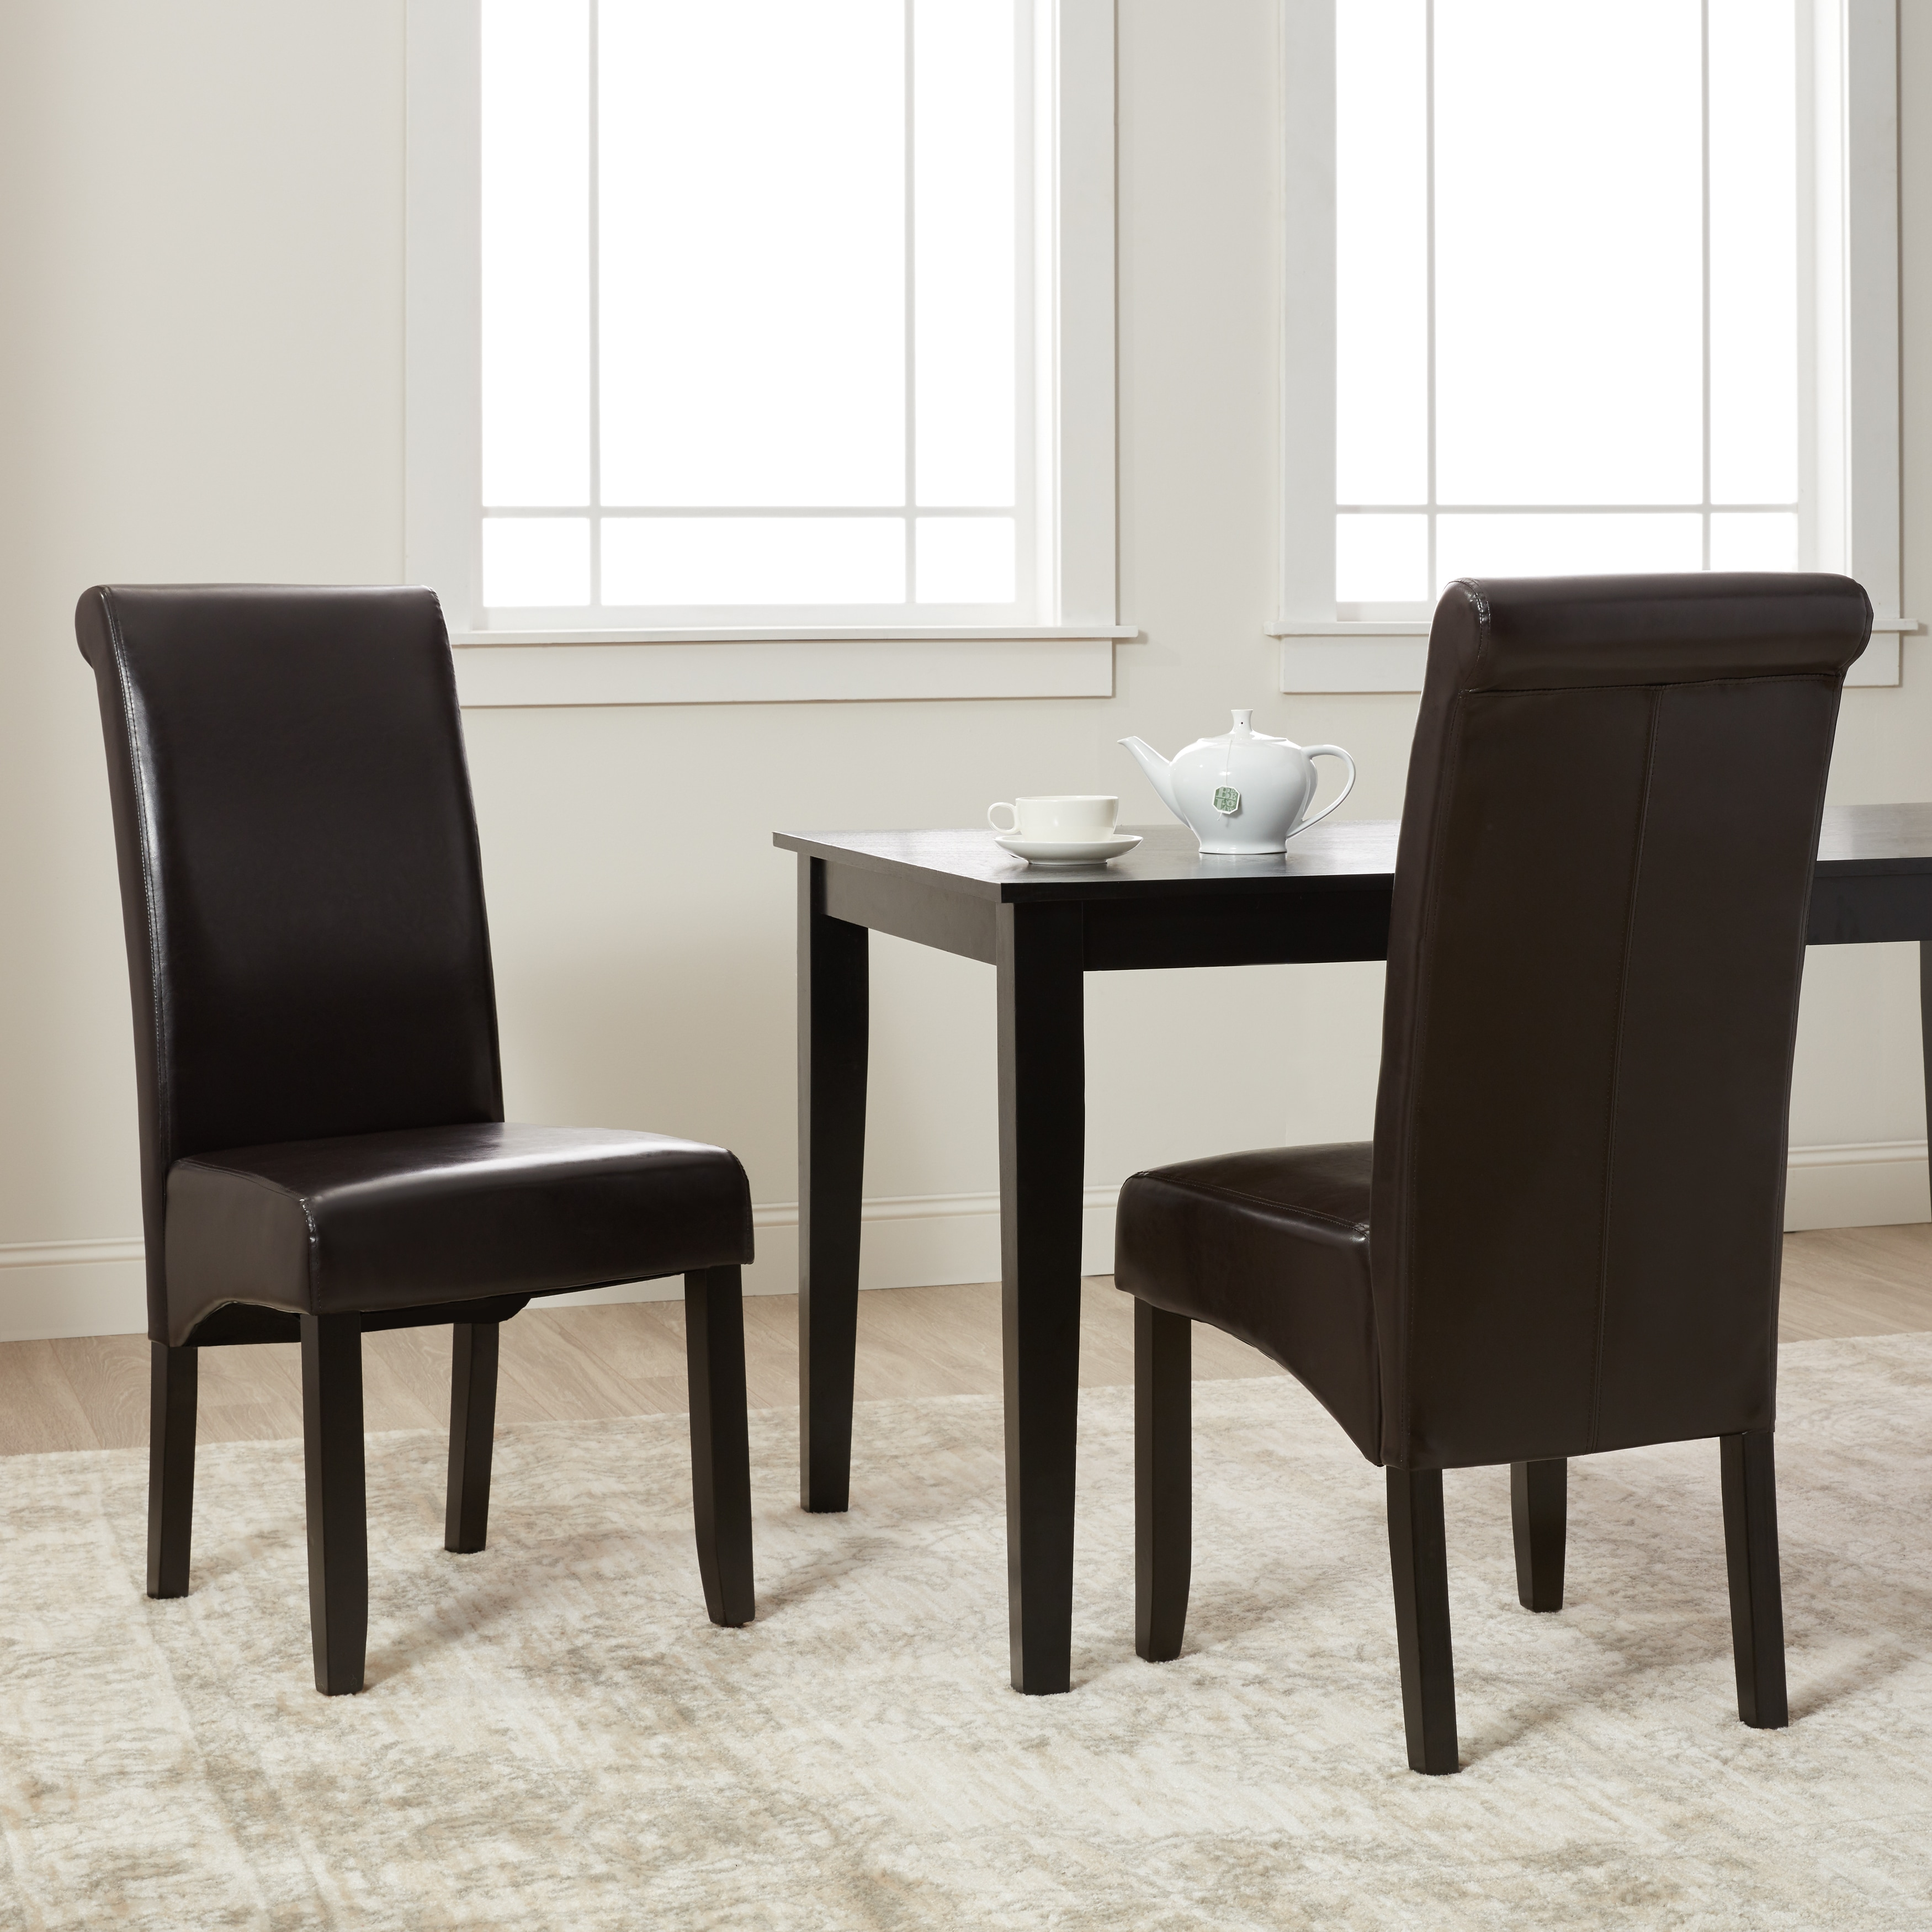 faux leather dining chairs chair cushions ikea shop milan set of 2 free shipping